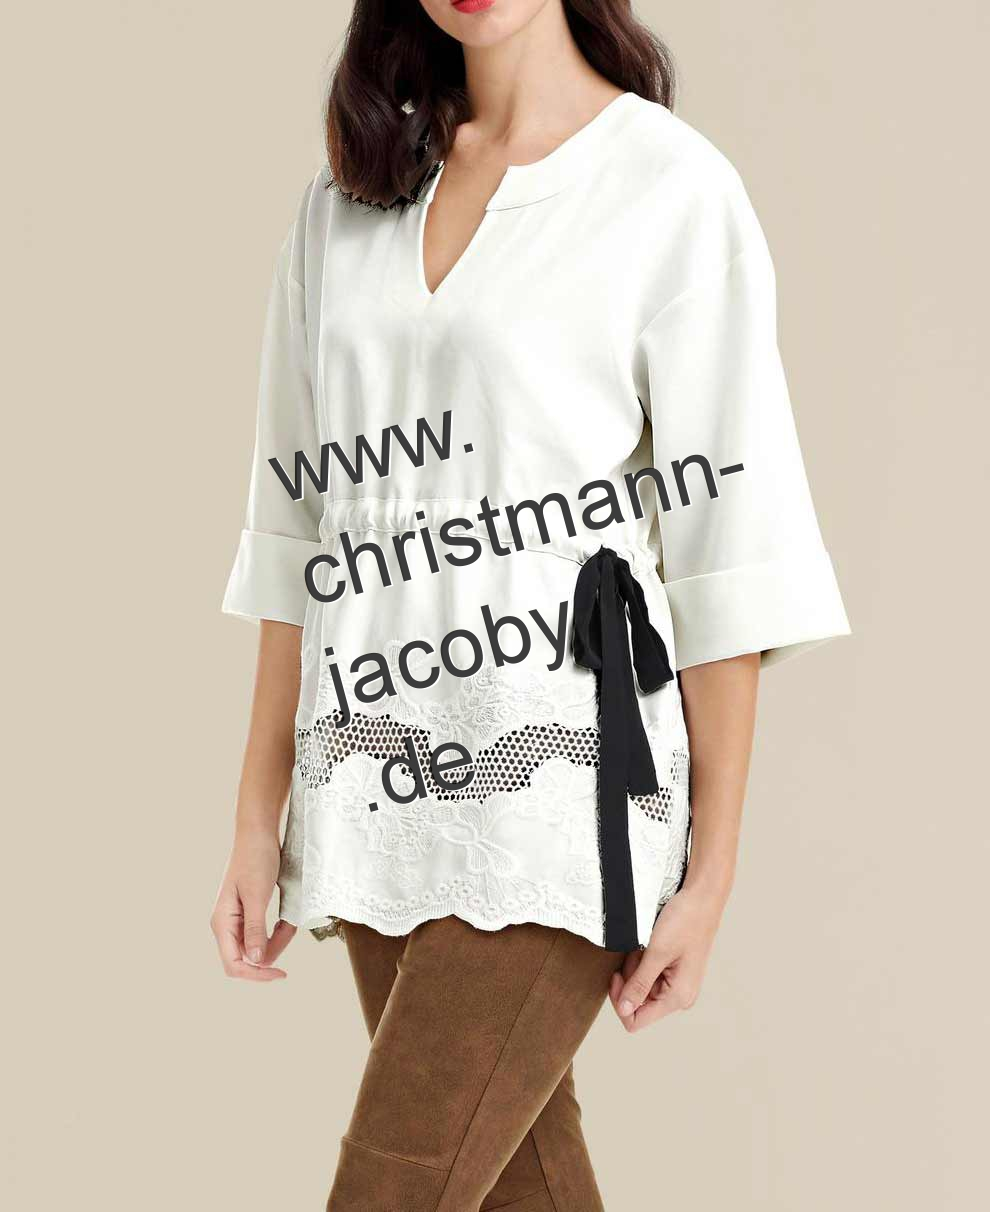 Tunic shirt with embroidery, offwhite